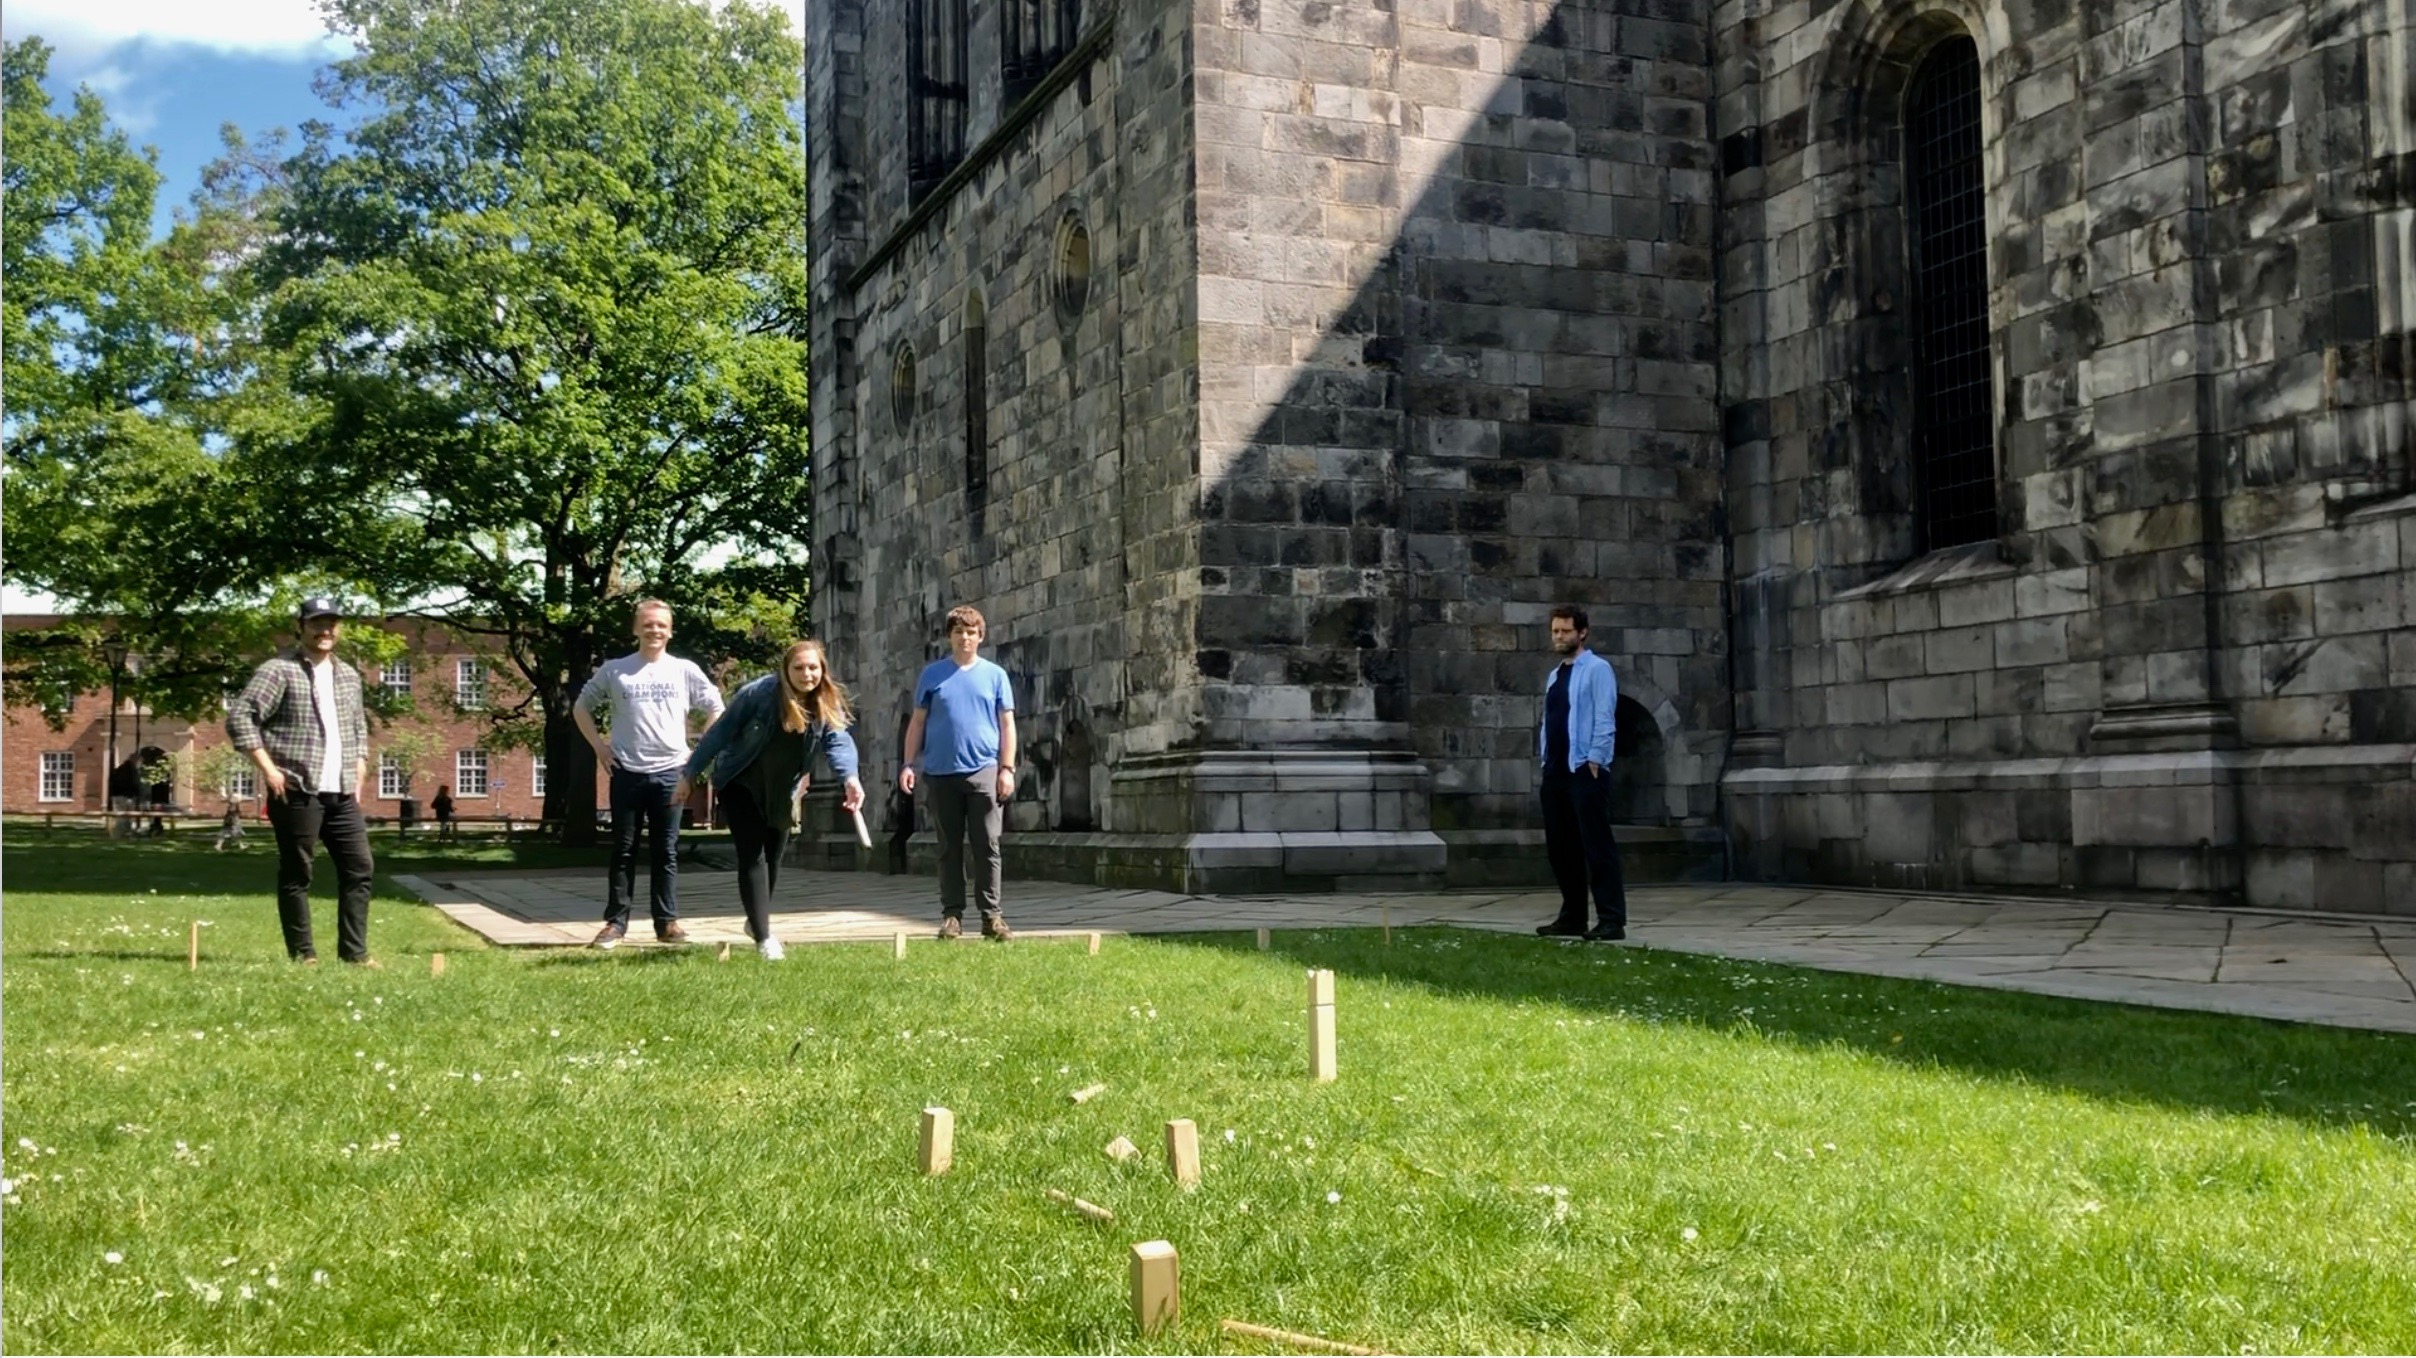 A professor and his students play kubb, with wooden blocks, in the grass.